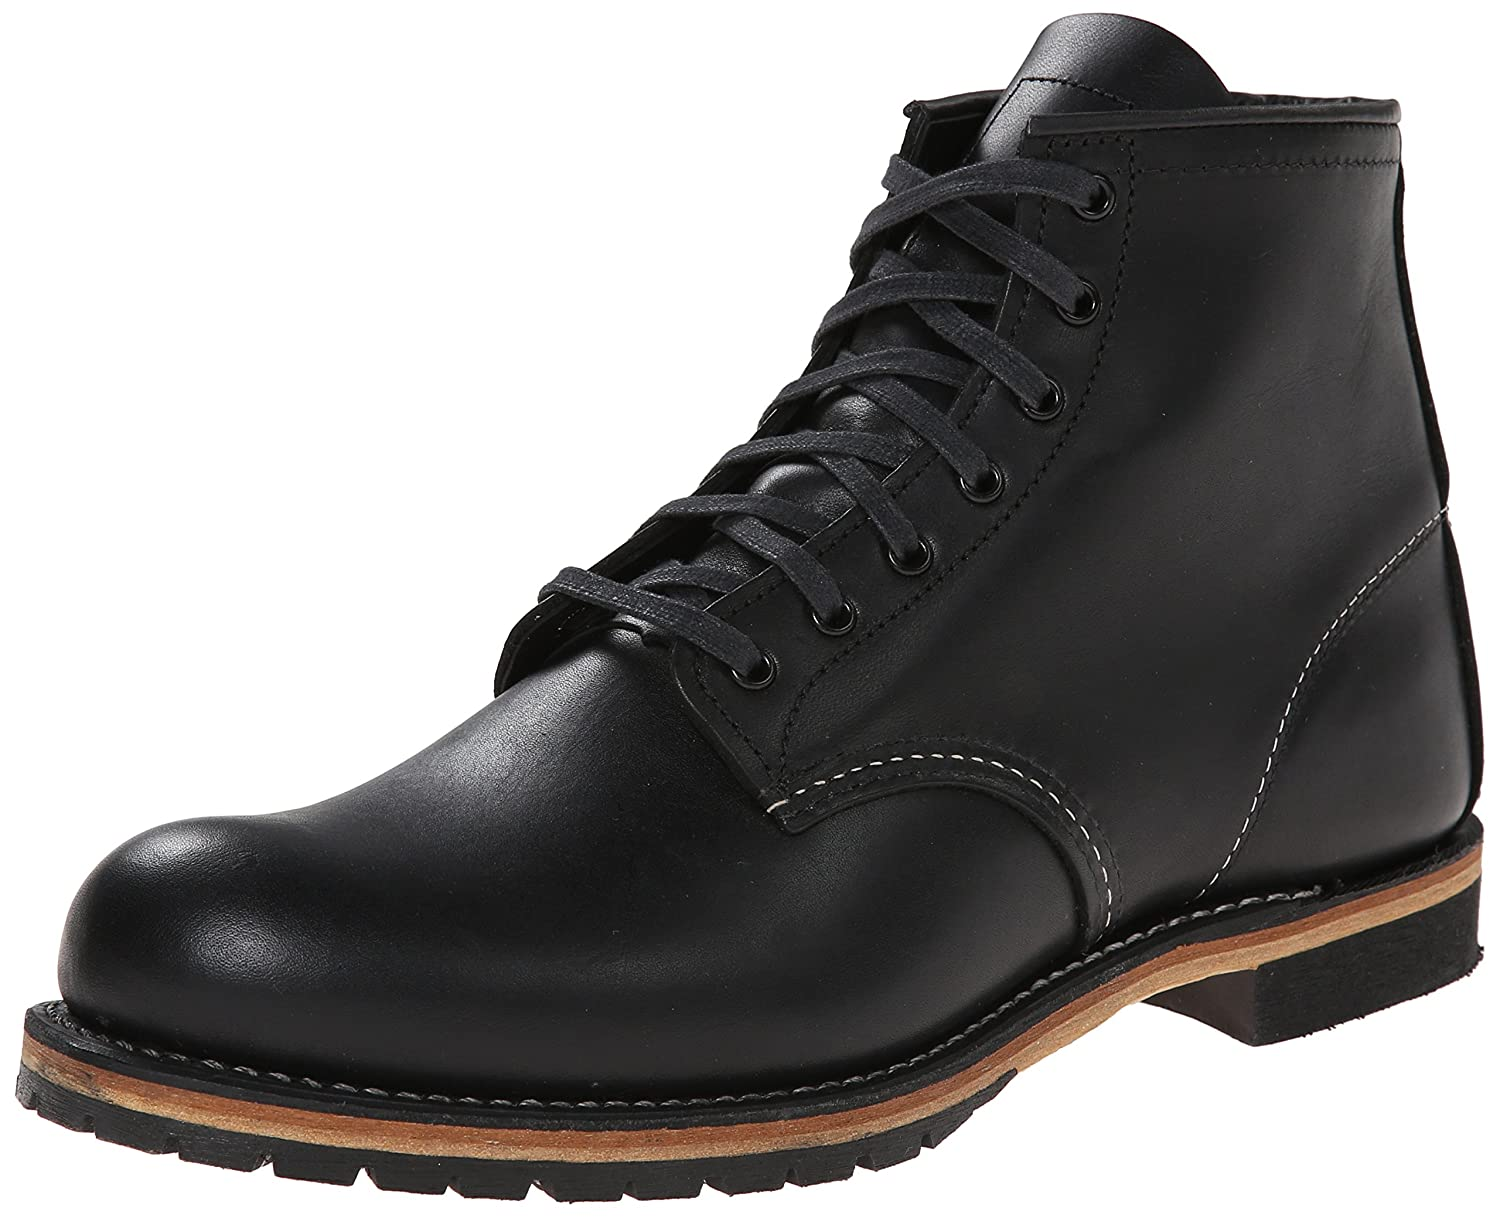 Steampunk Boots and Shoes for Men Red Wing Heritage Mens Beckman Round 6 Boot $397.89 AT vintagedancer.com